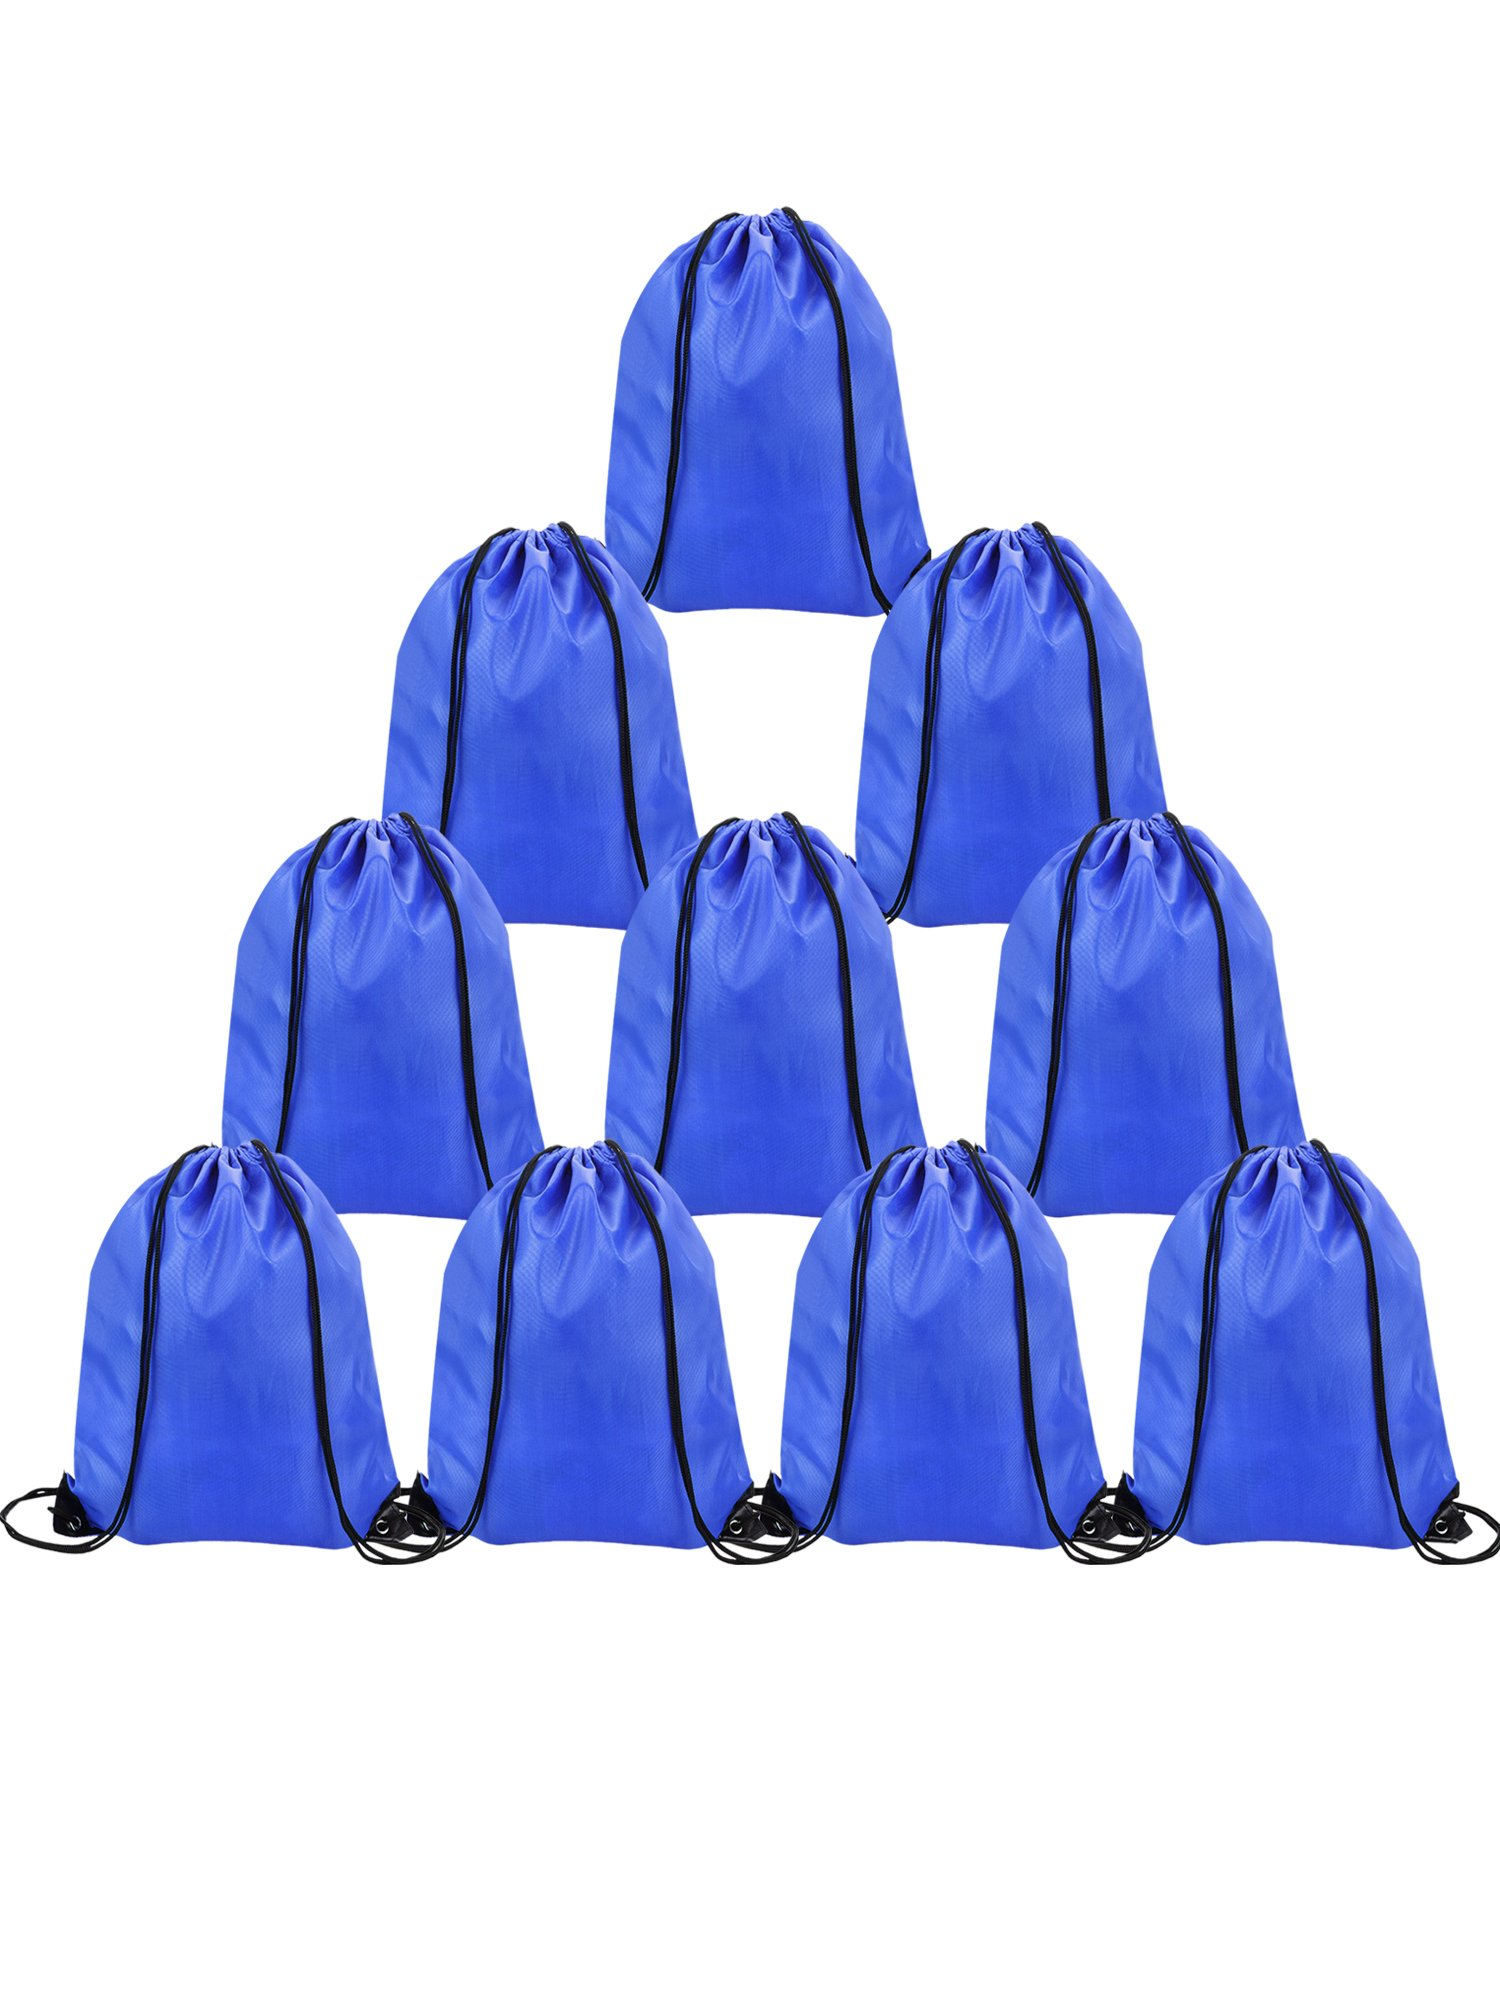 Shappy 10 Pieces Drawstring Bag Sack Pack Cinch Tote Kids Adults Storage Bag for Gym Traveling (Navy Blue)